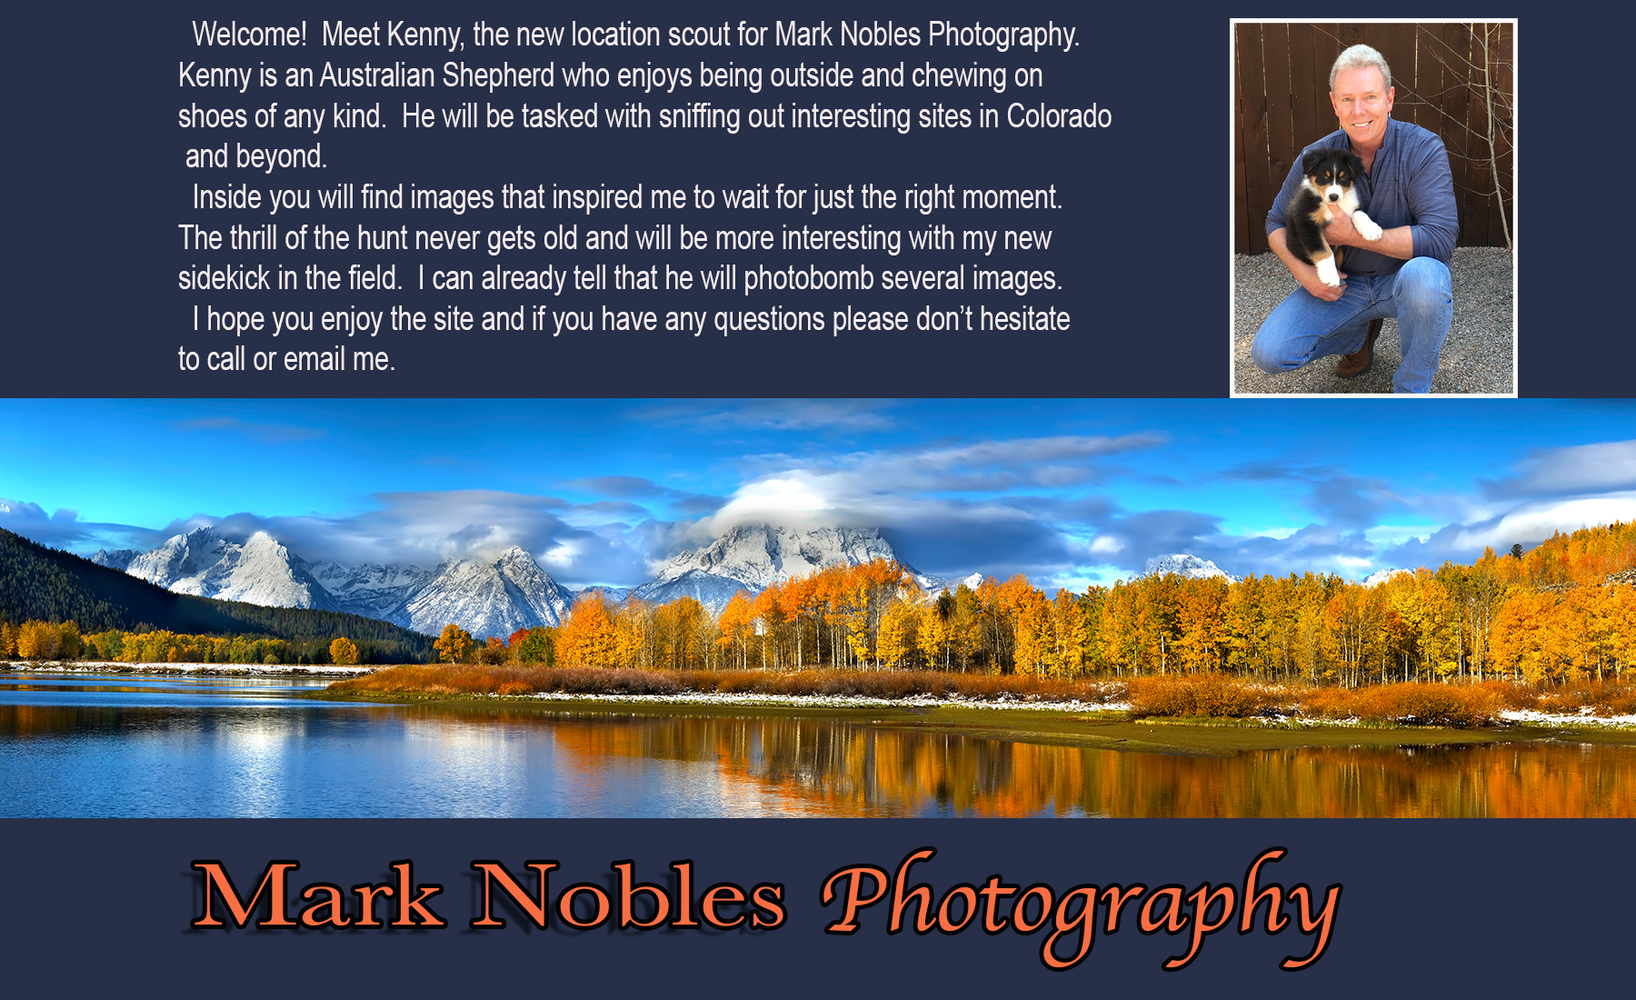 Mark Nobles Photography